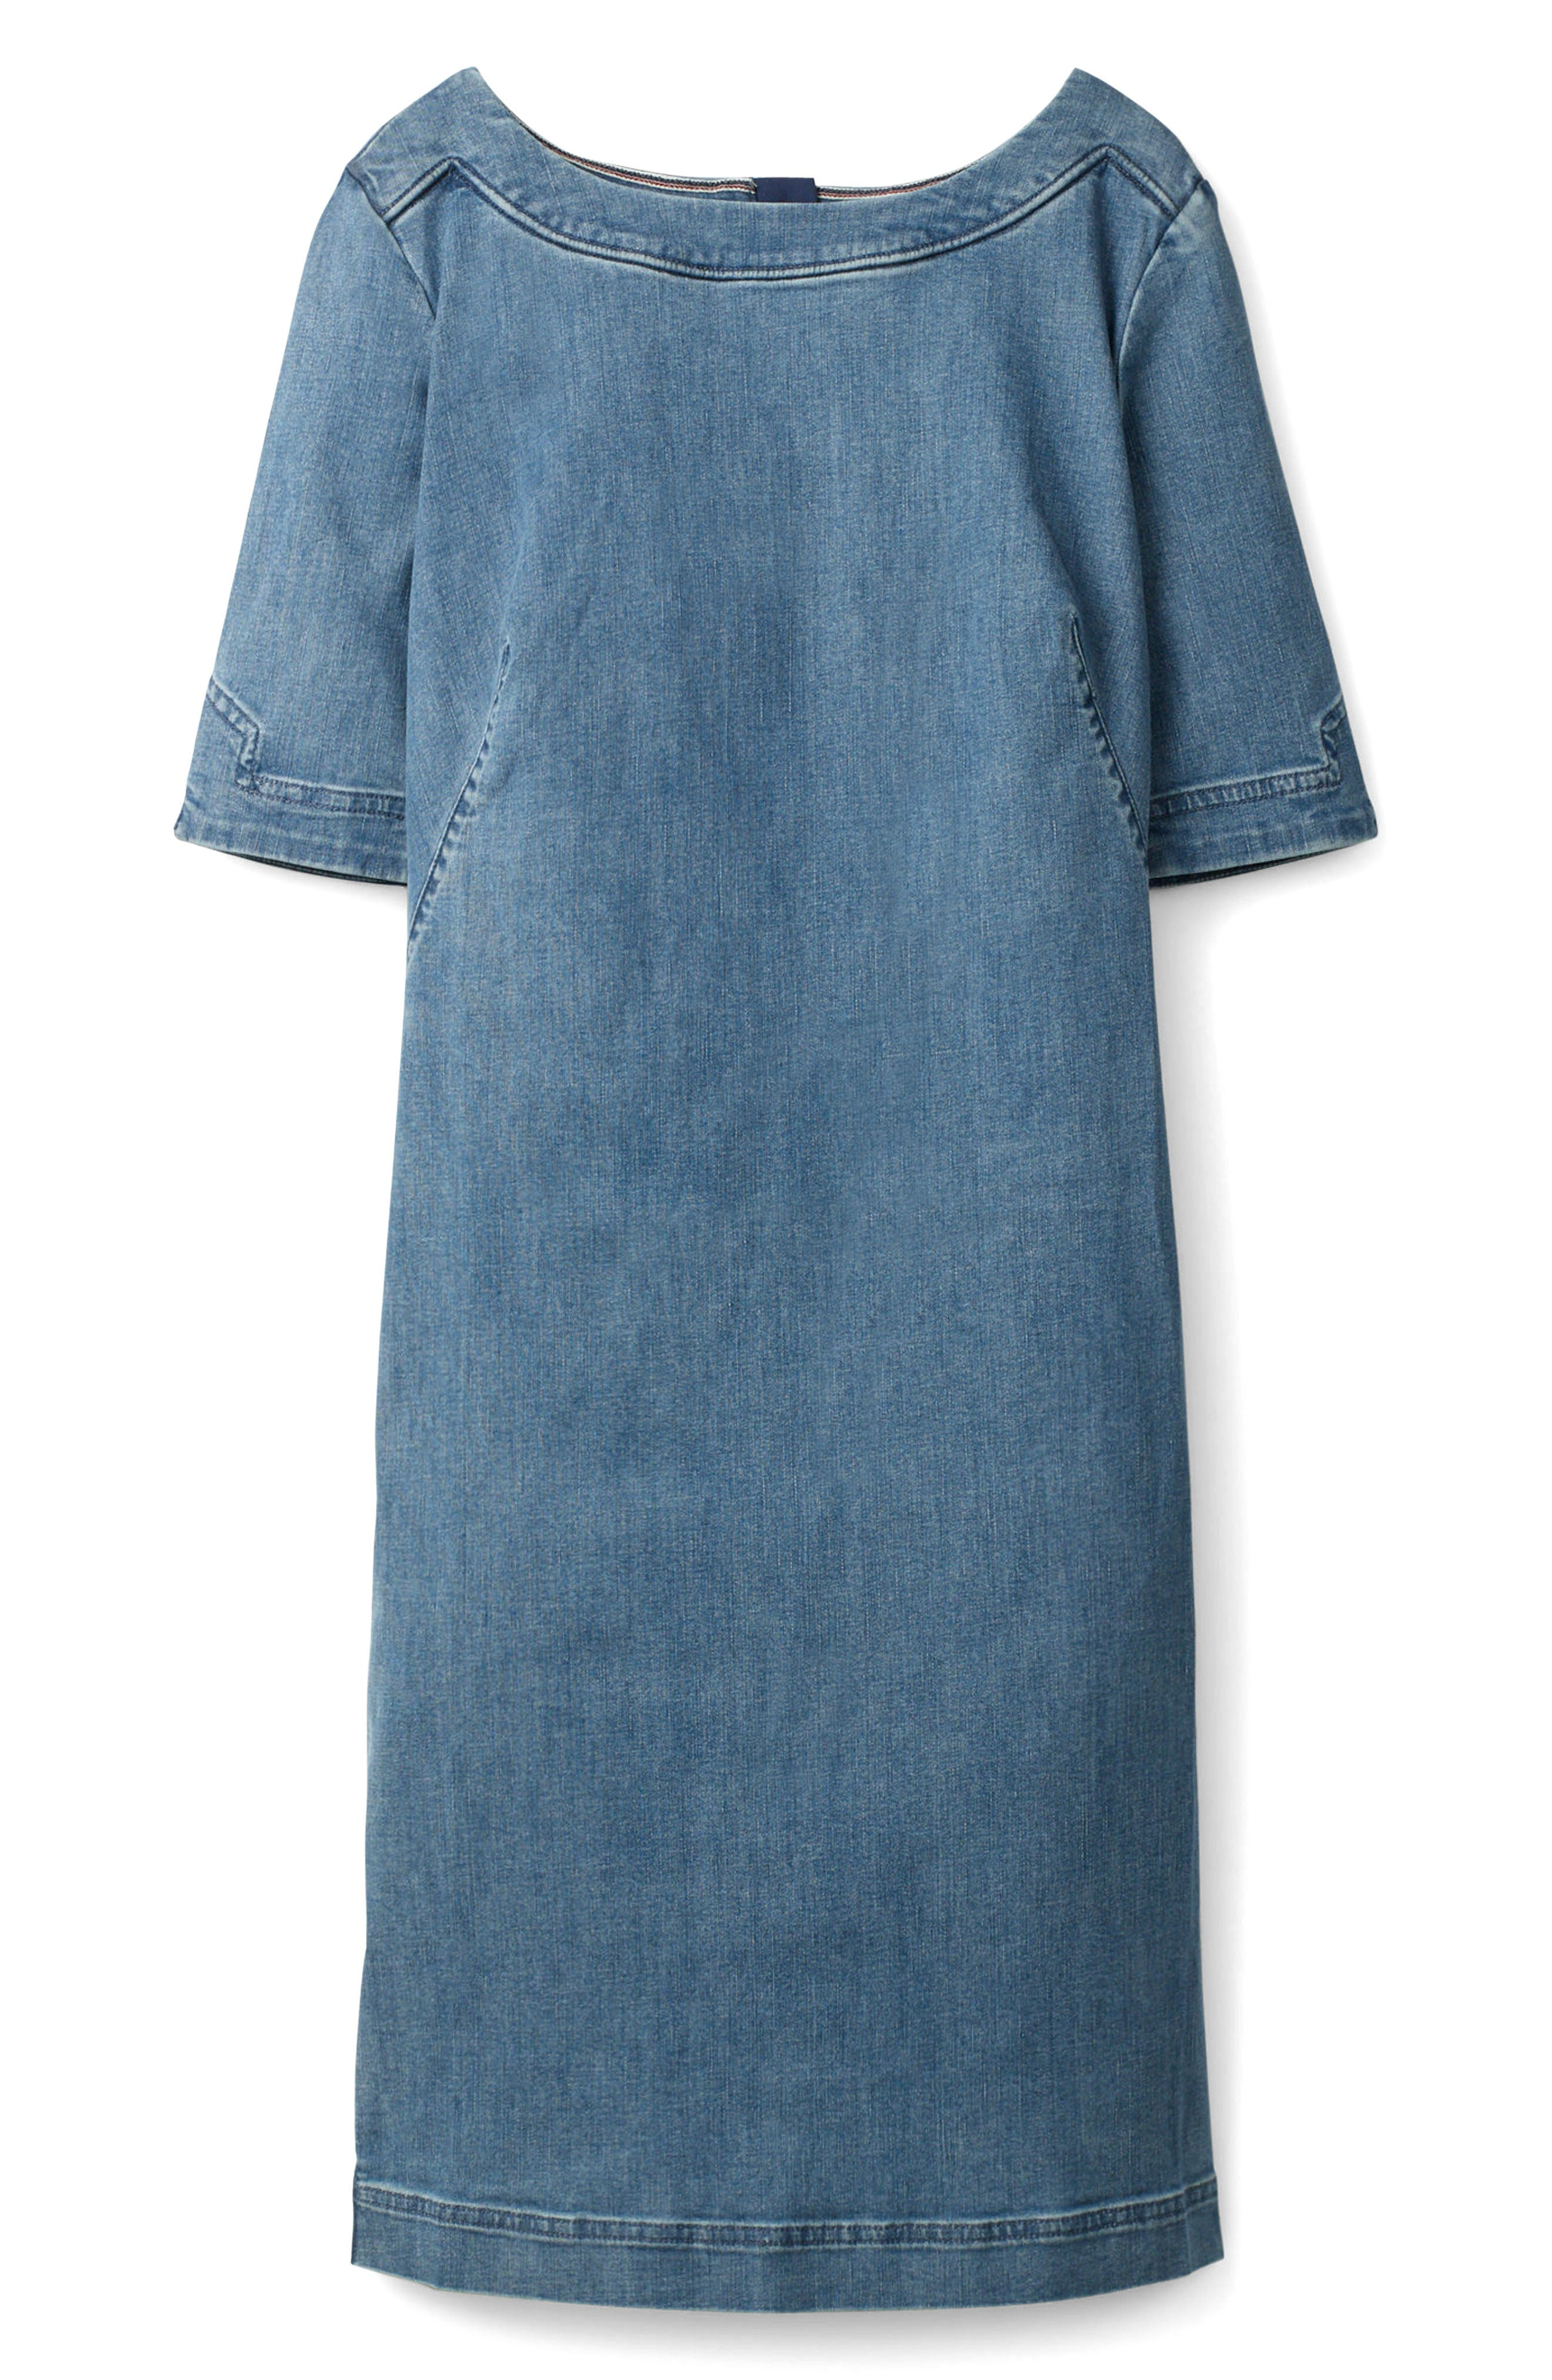 Rhea Denim Contrast Dress,                             Alternate thumbnail 6, color,                             Mid Vintage With Side Stripe